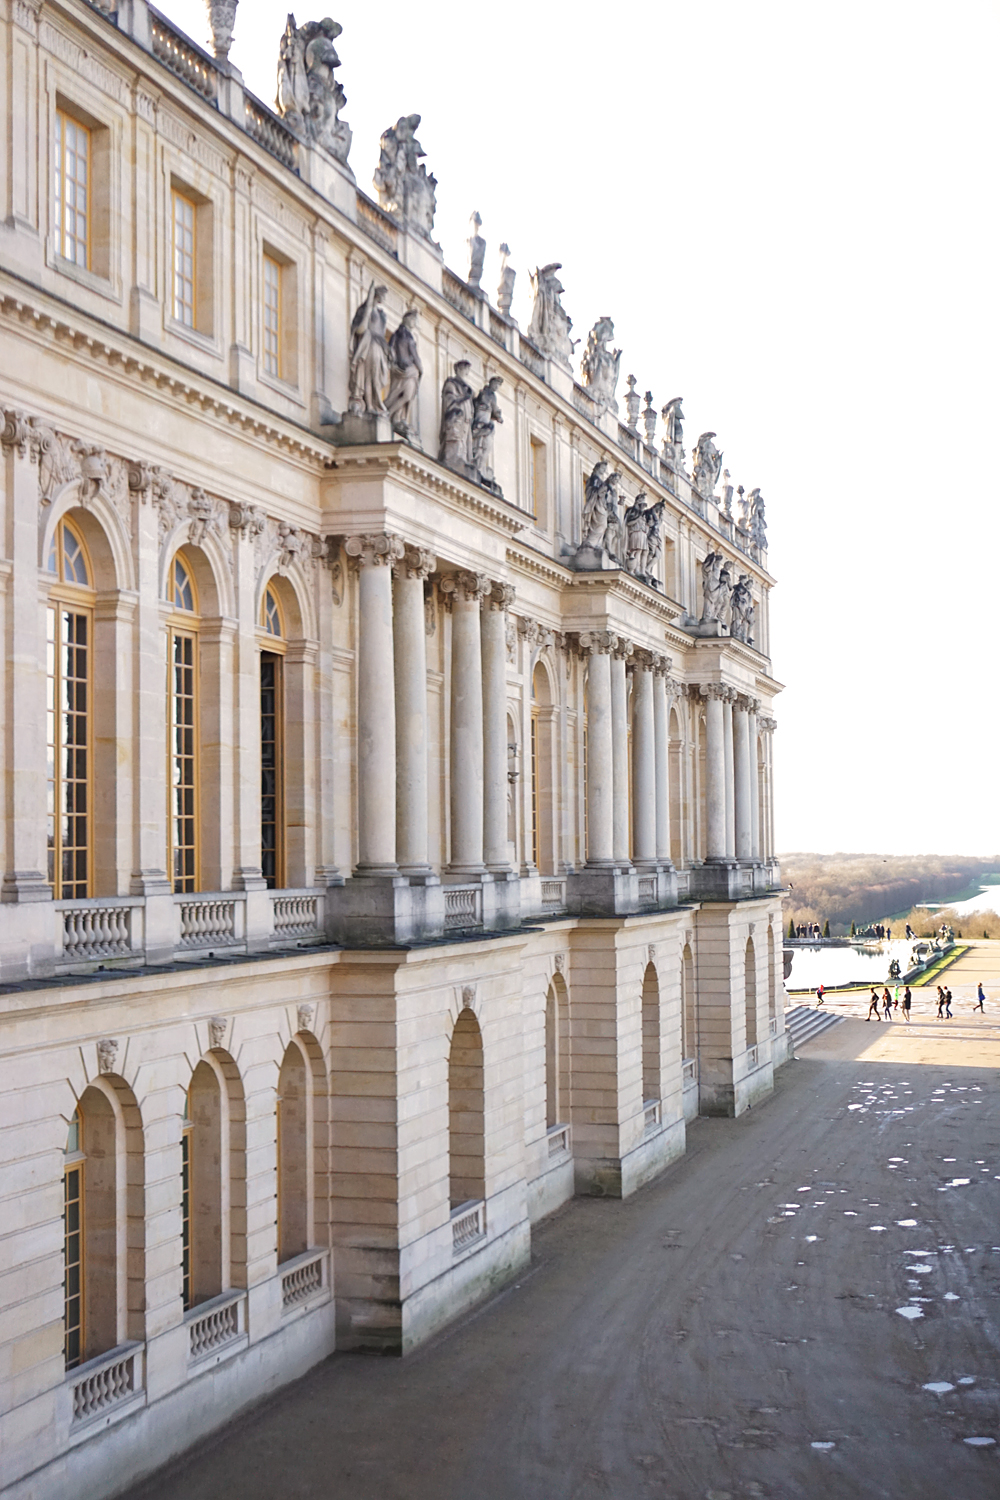 06chateau-versailles-france-travel-architecture